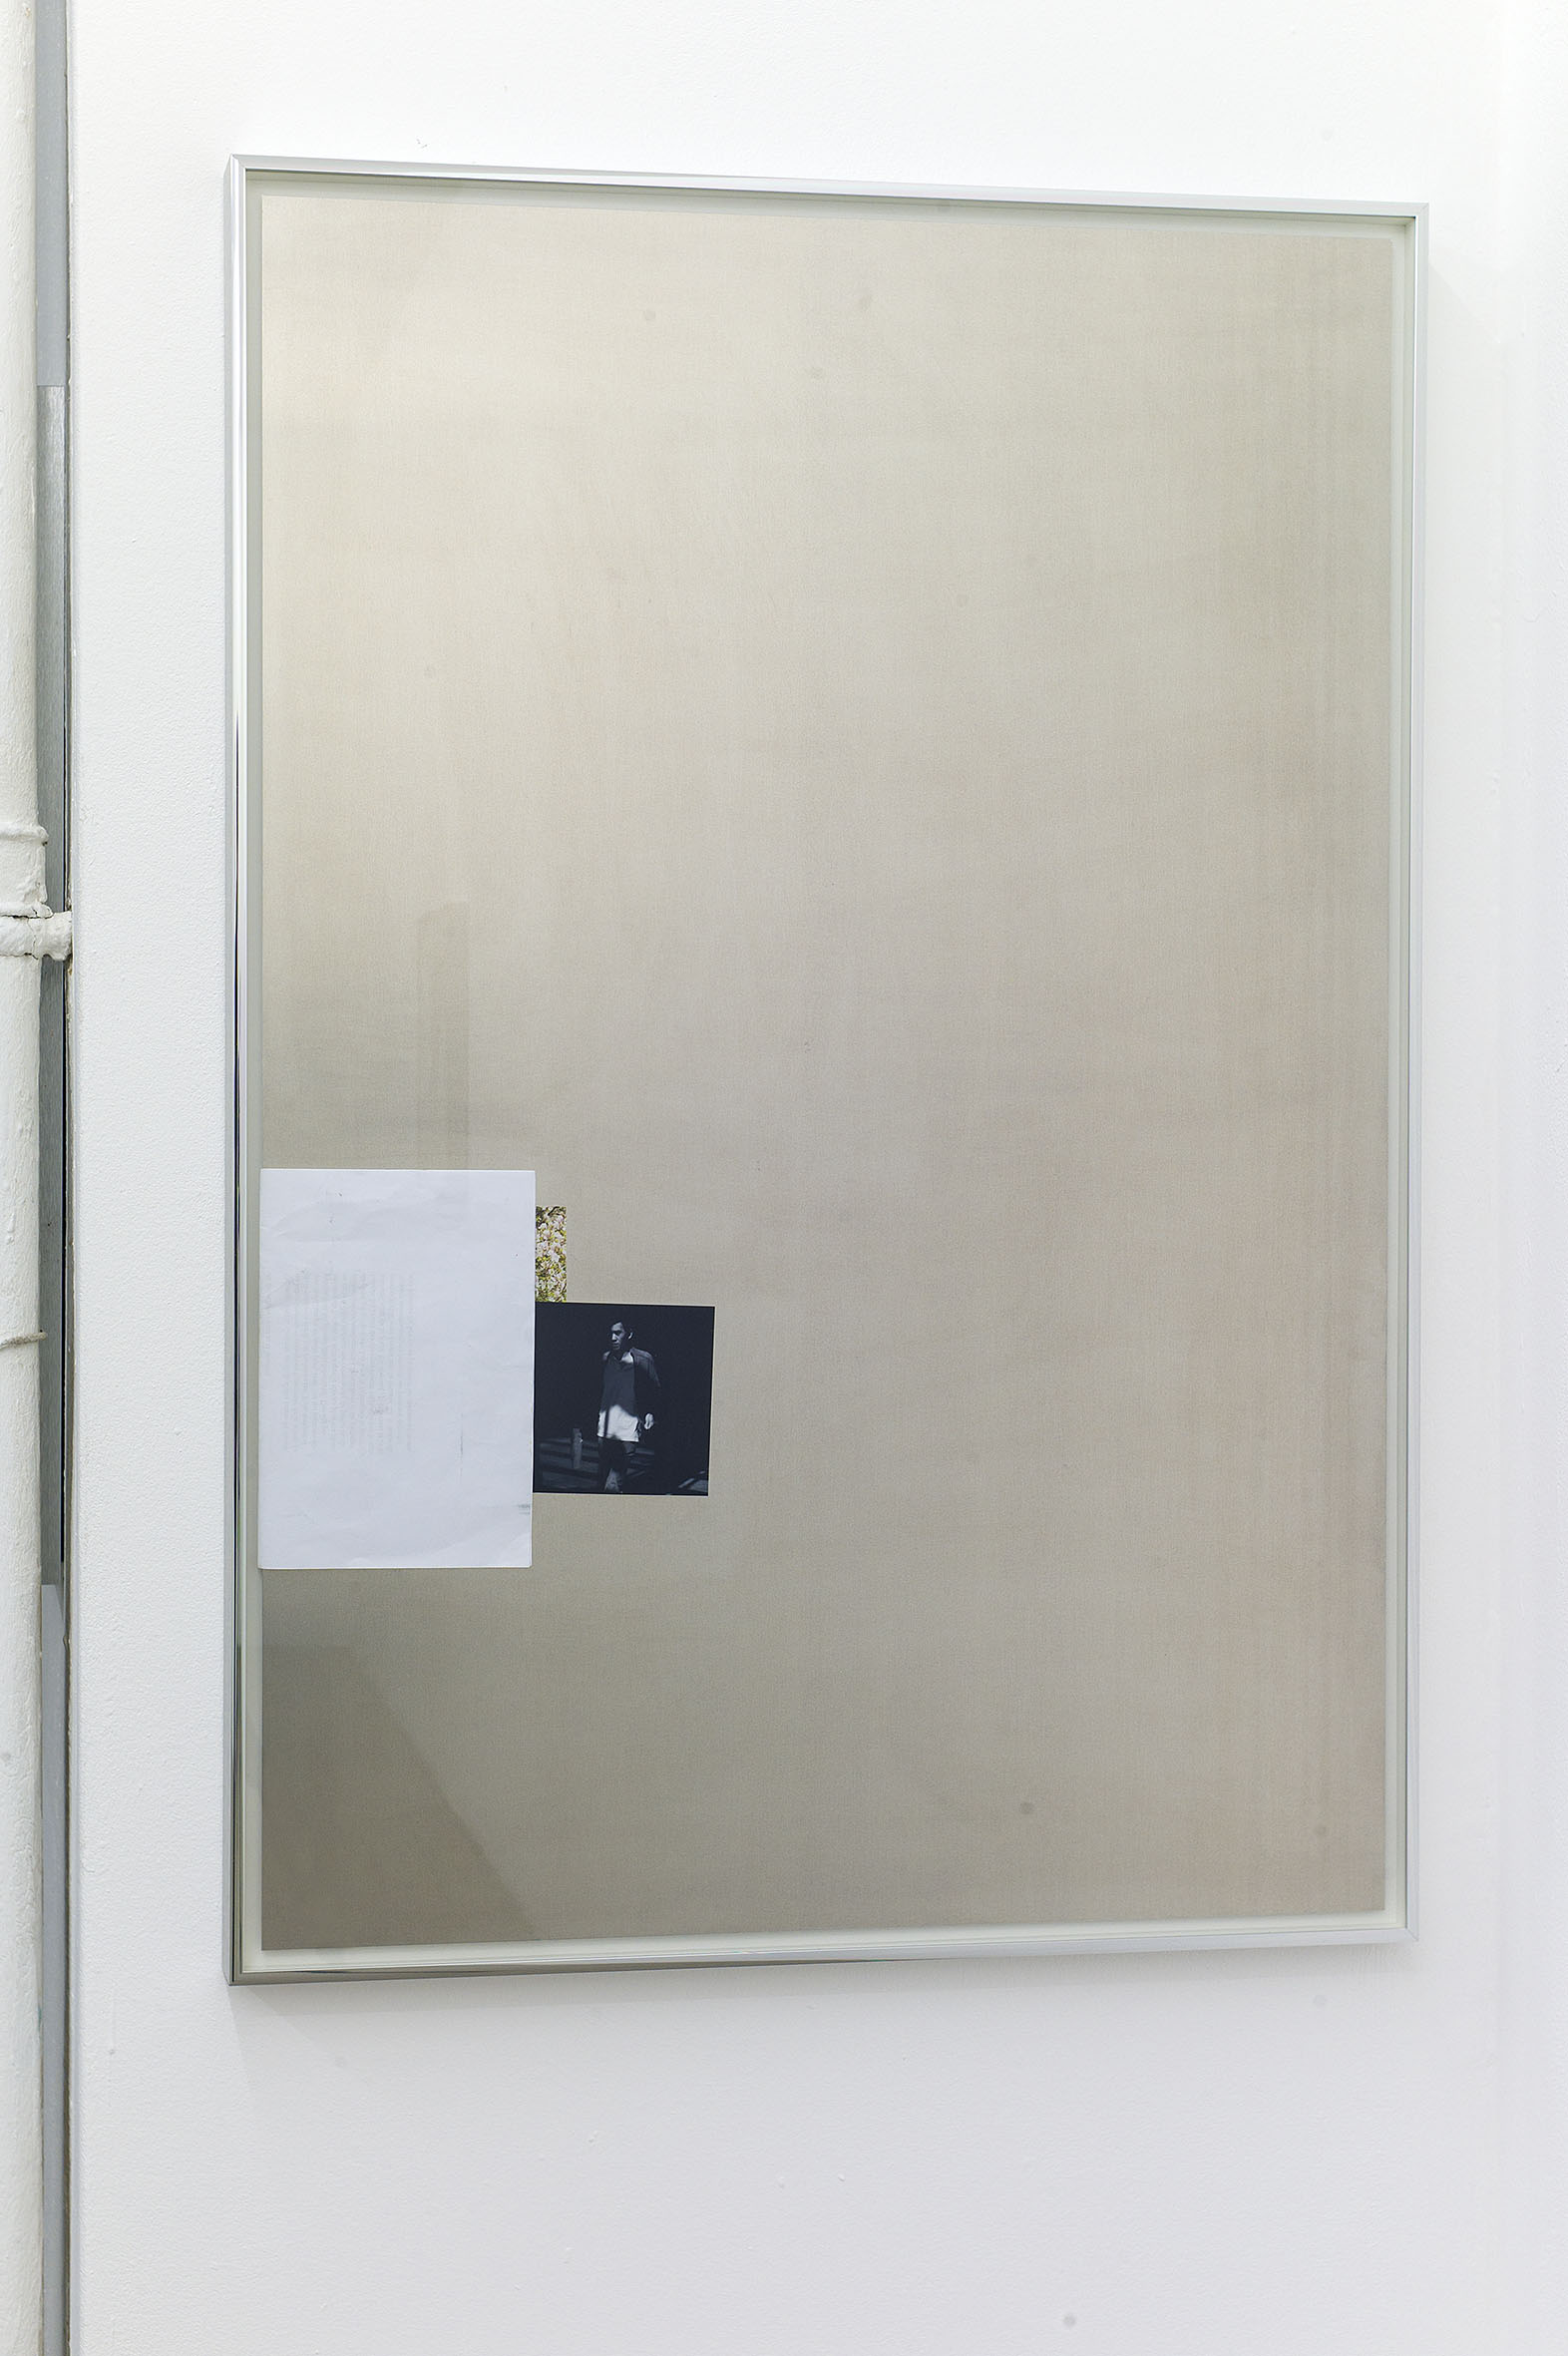 Martin Widmer, WHOOSHH, Gallery Truth and Consequences, Geneva,